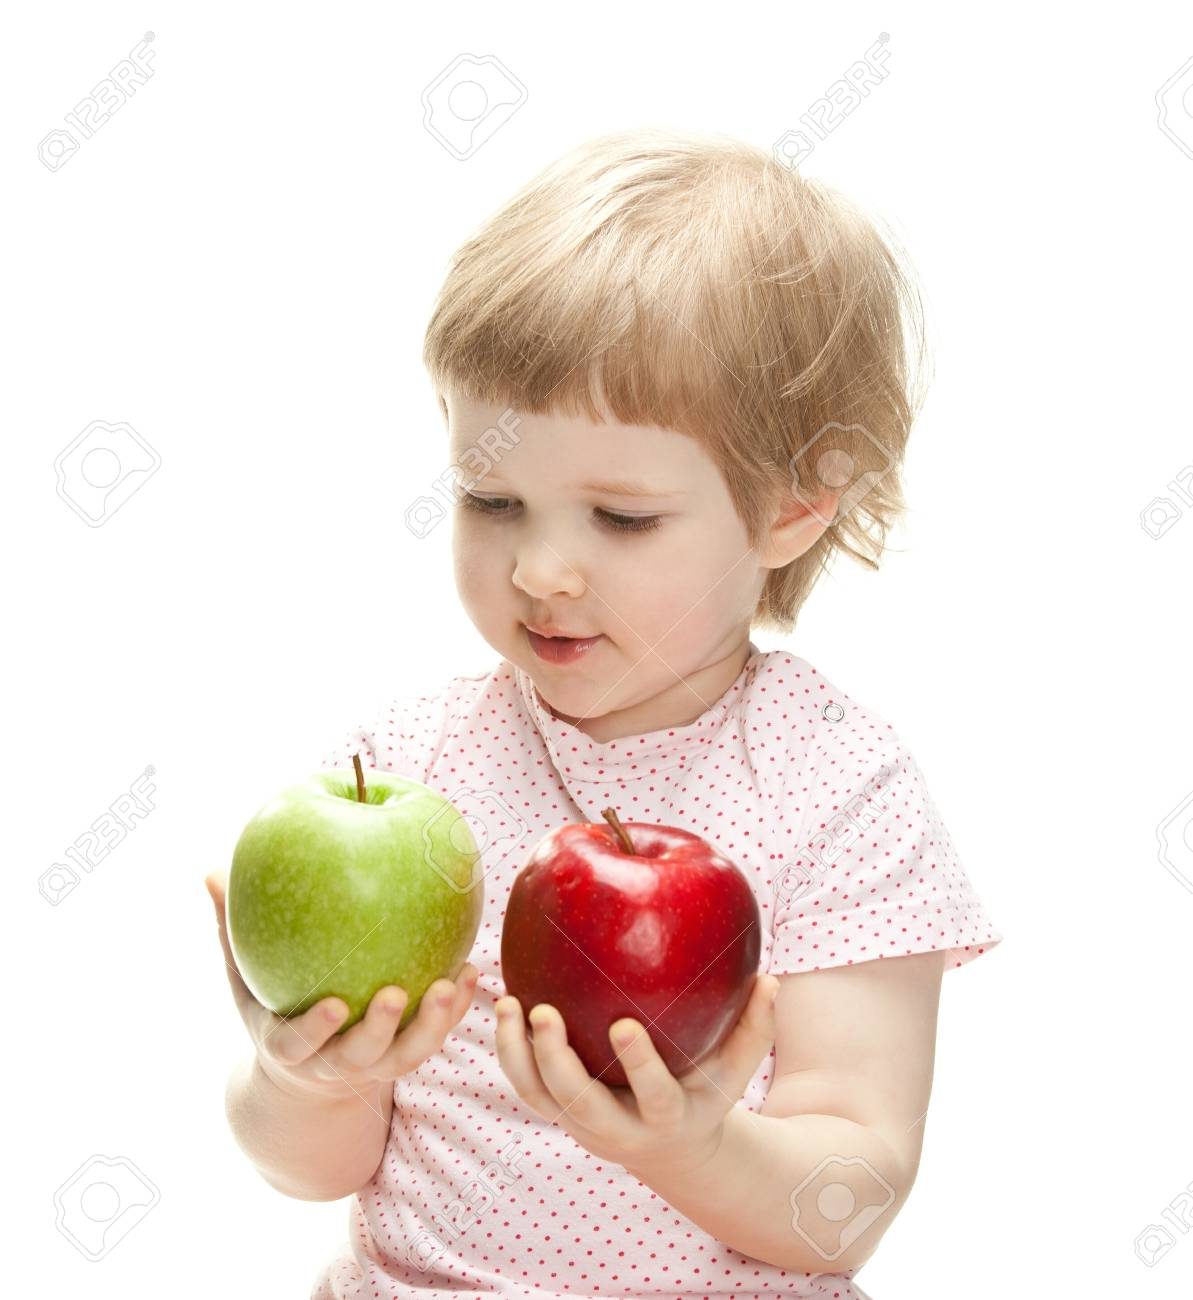 Cute child holding apples looking and them, isolated on white Stock Photo - 13664940